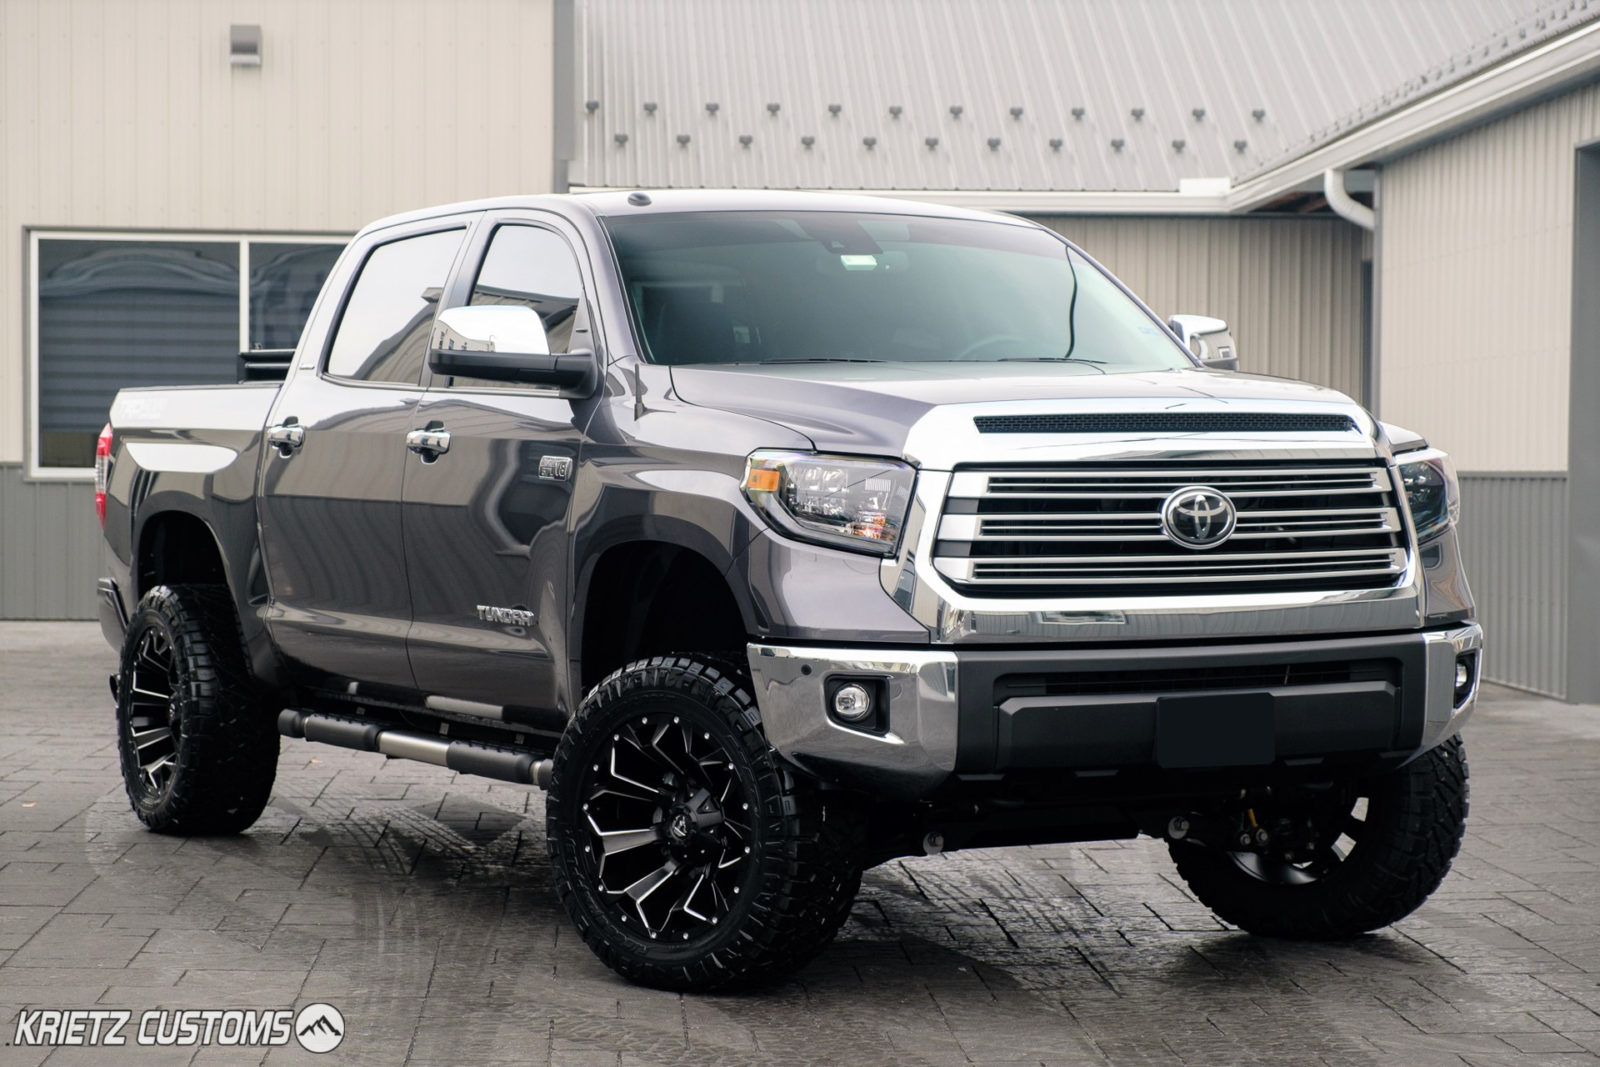 Toyota Tundra Aftermarket Parts >> 2019 Toyota Tundra with Fuel Wheels